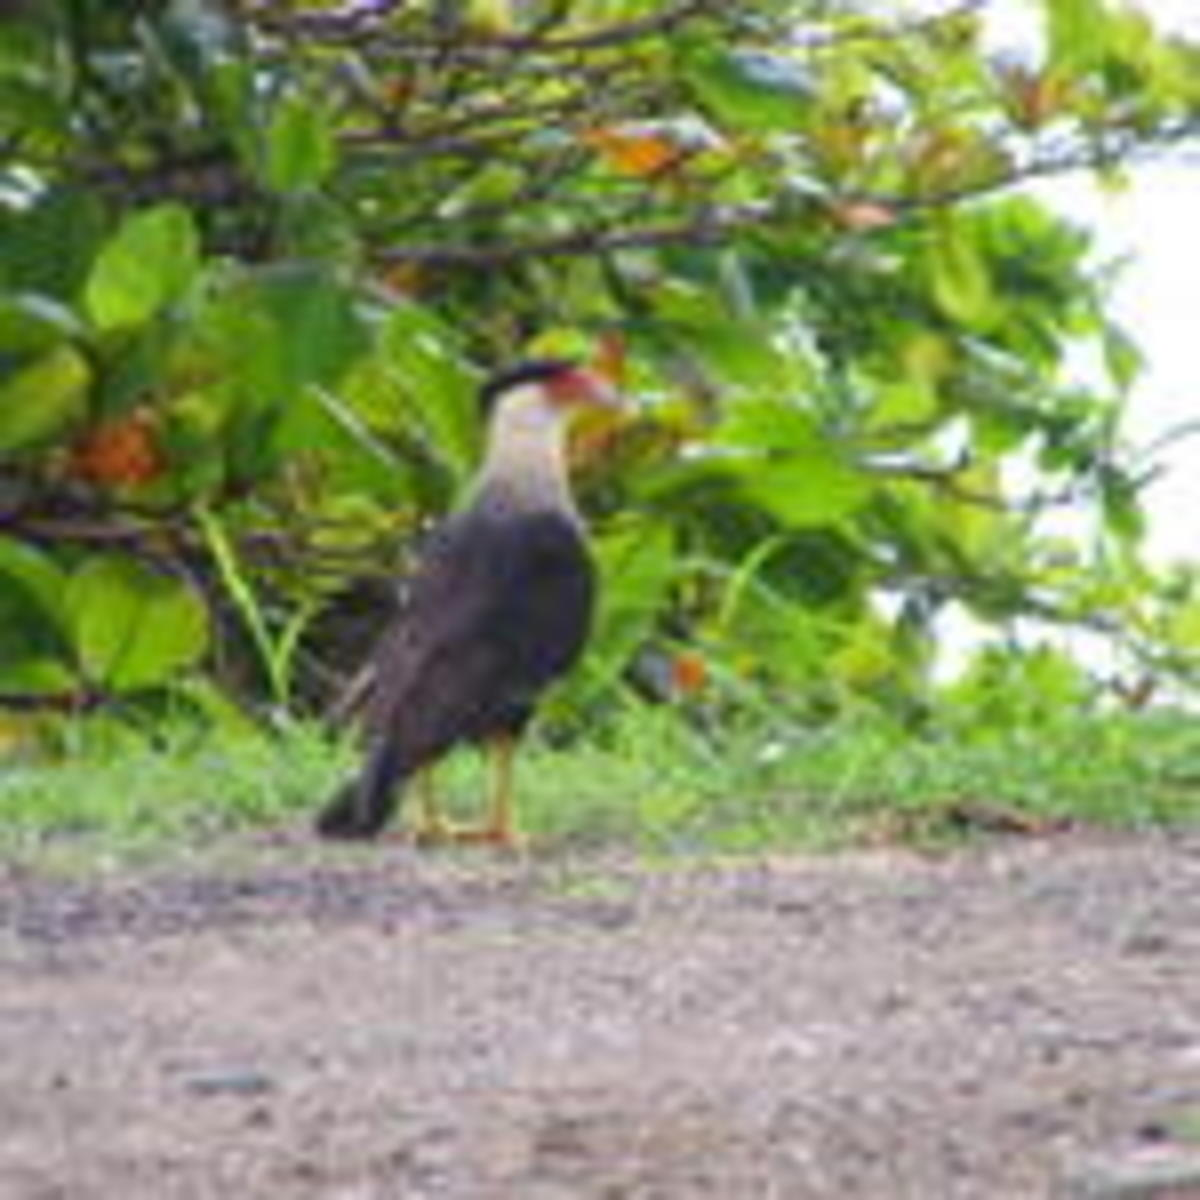 Crested Caracara.  This large bird looks to me like the result of an amorous encounter between a hawk and a chiken.